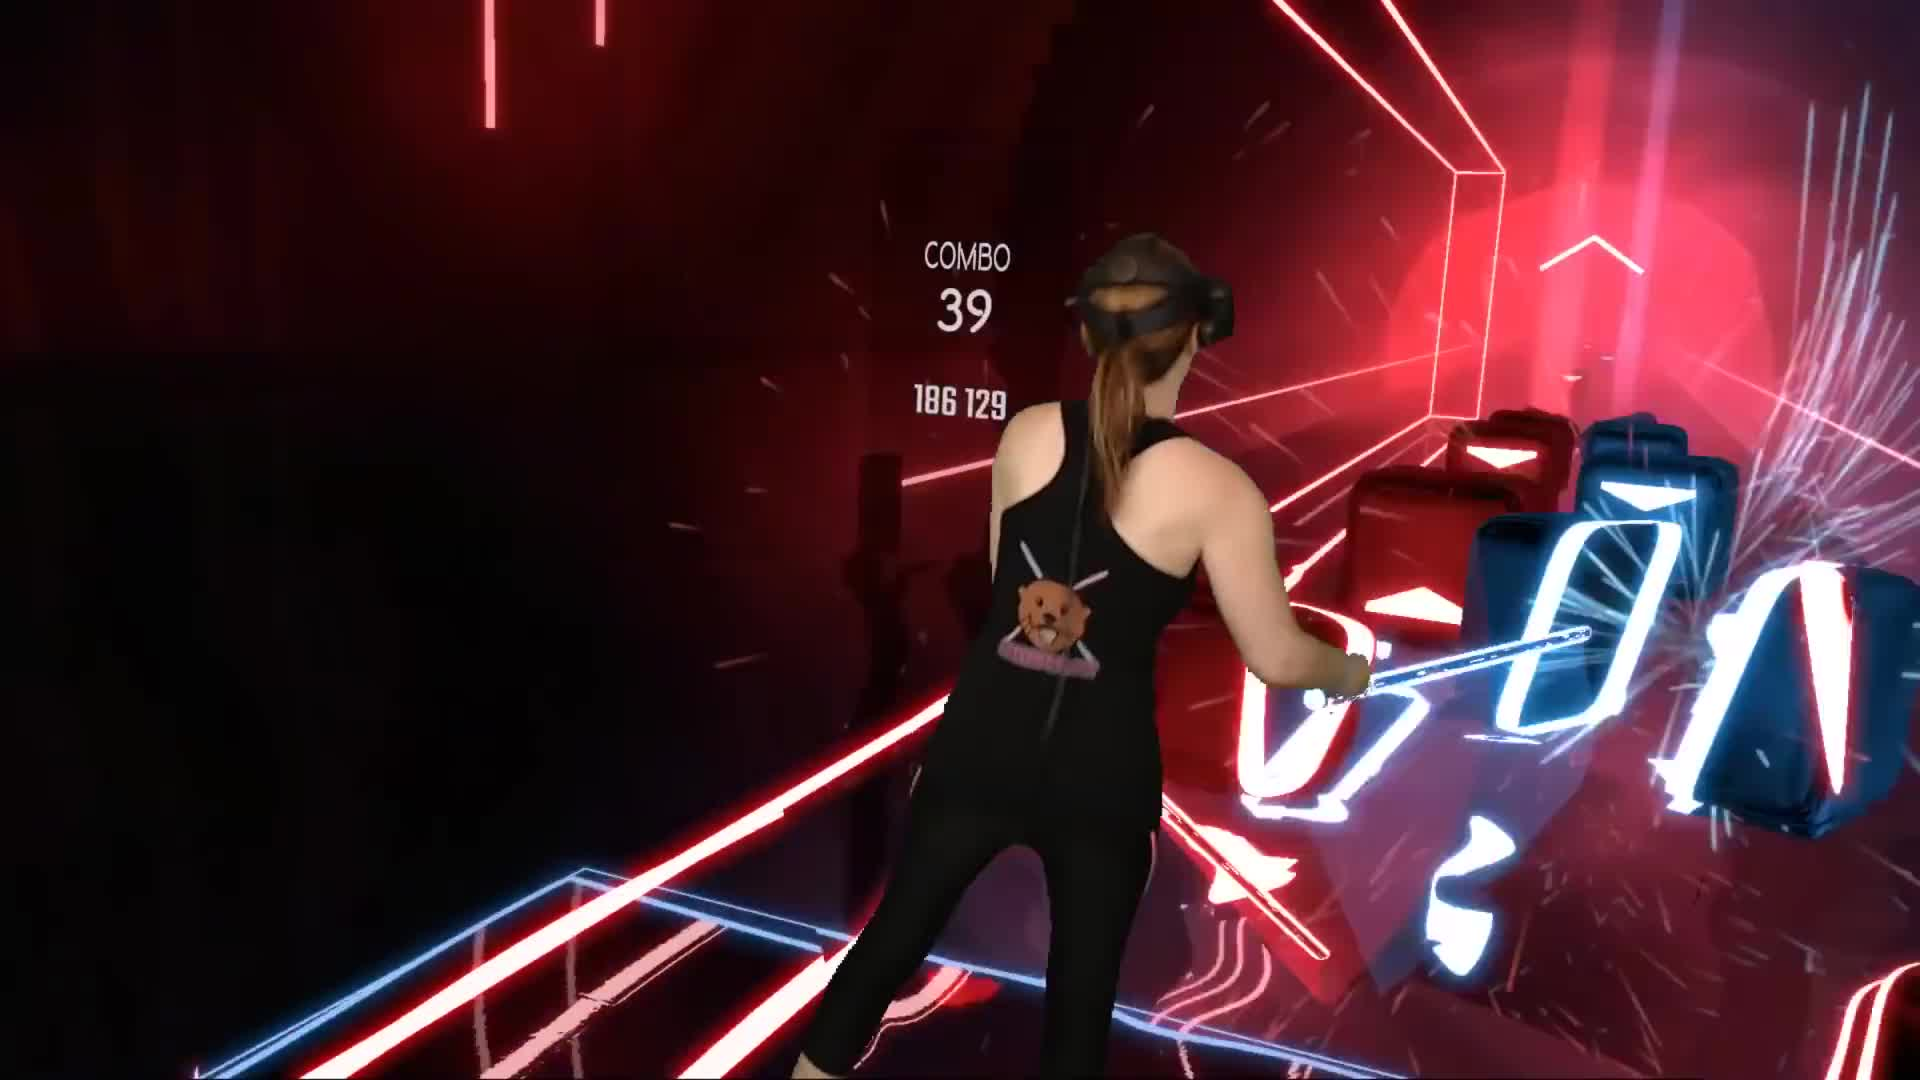 Beat Saber Vr Gifs Search   Search & Share on Homdor